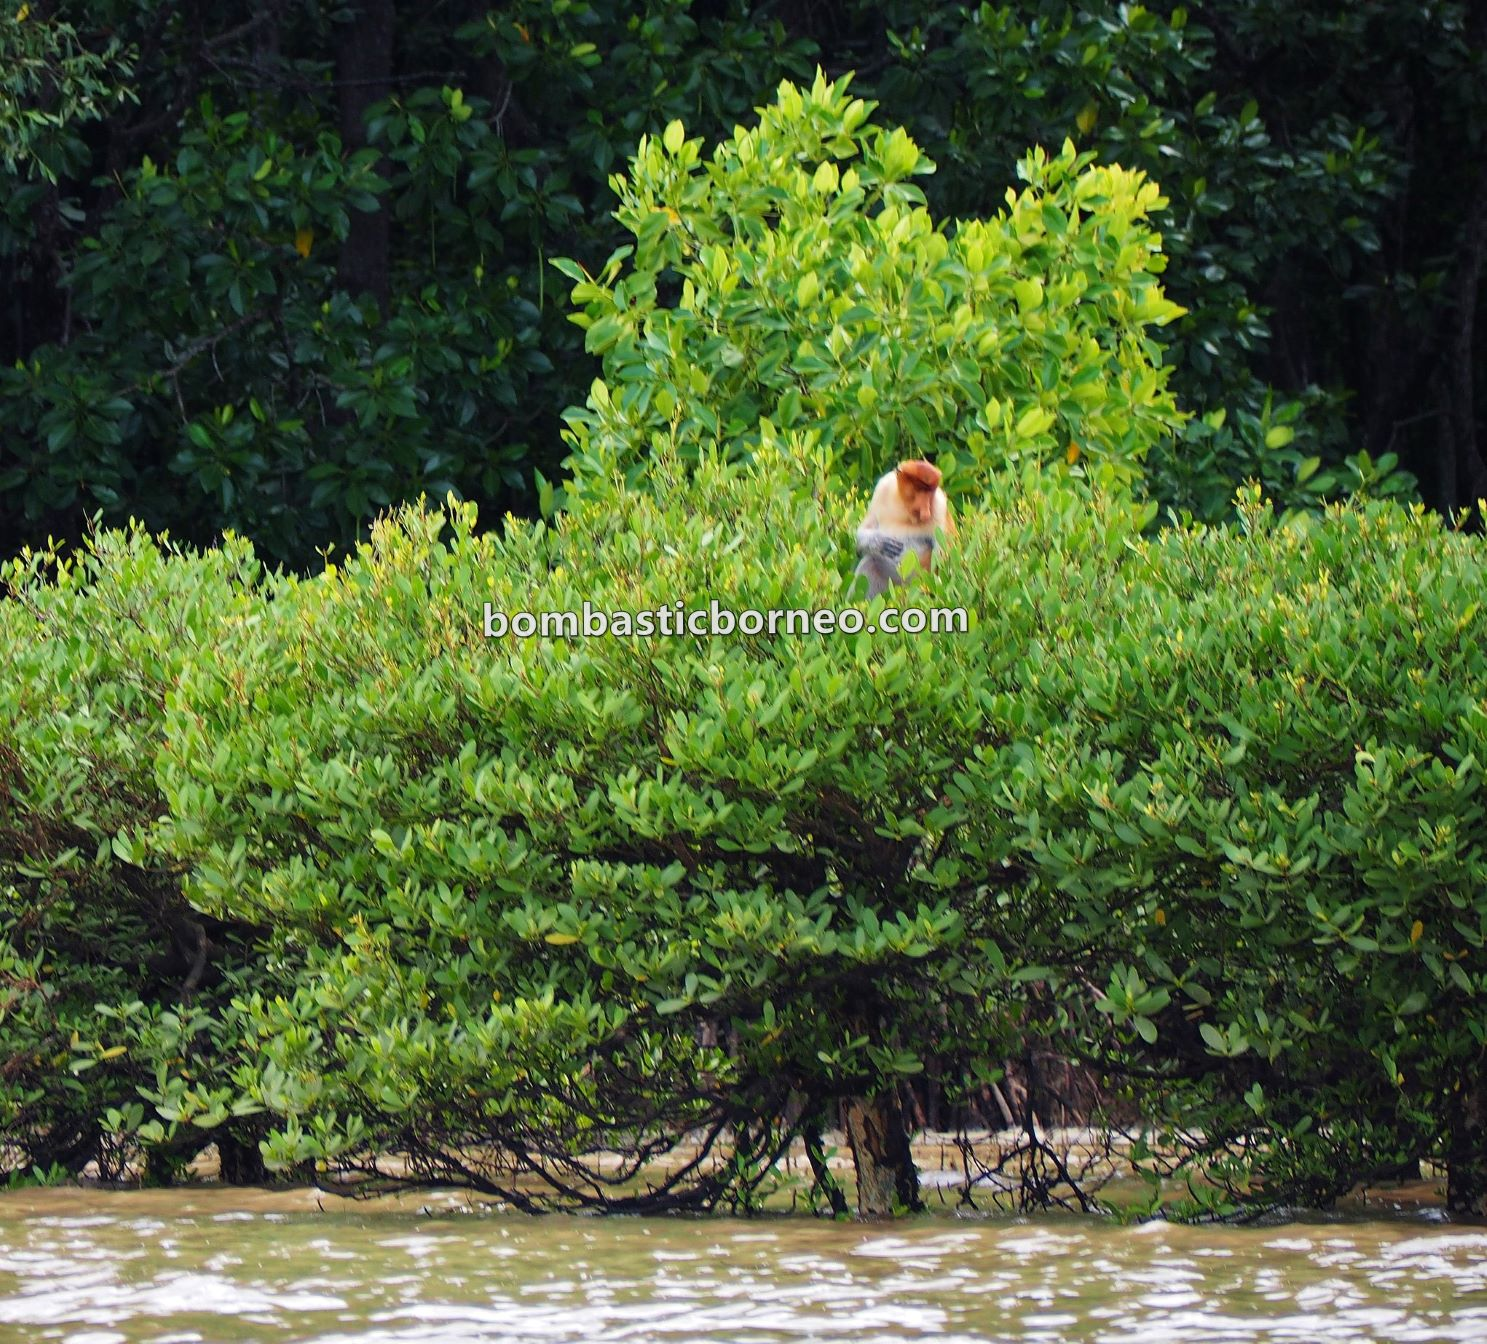 Pulau Sebatik, exploration, adventure, nature, backpackers, destination, Malaysia, Sabah, Monyet Belanda, Proboscis monkey, wildlife, Ecotourism, tourist attraction, Travel Guide, Trans Borneo